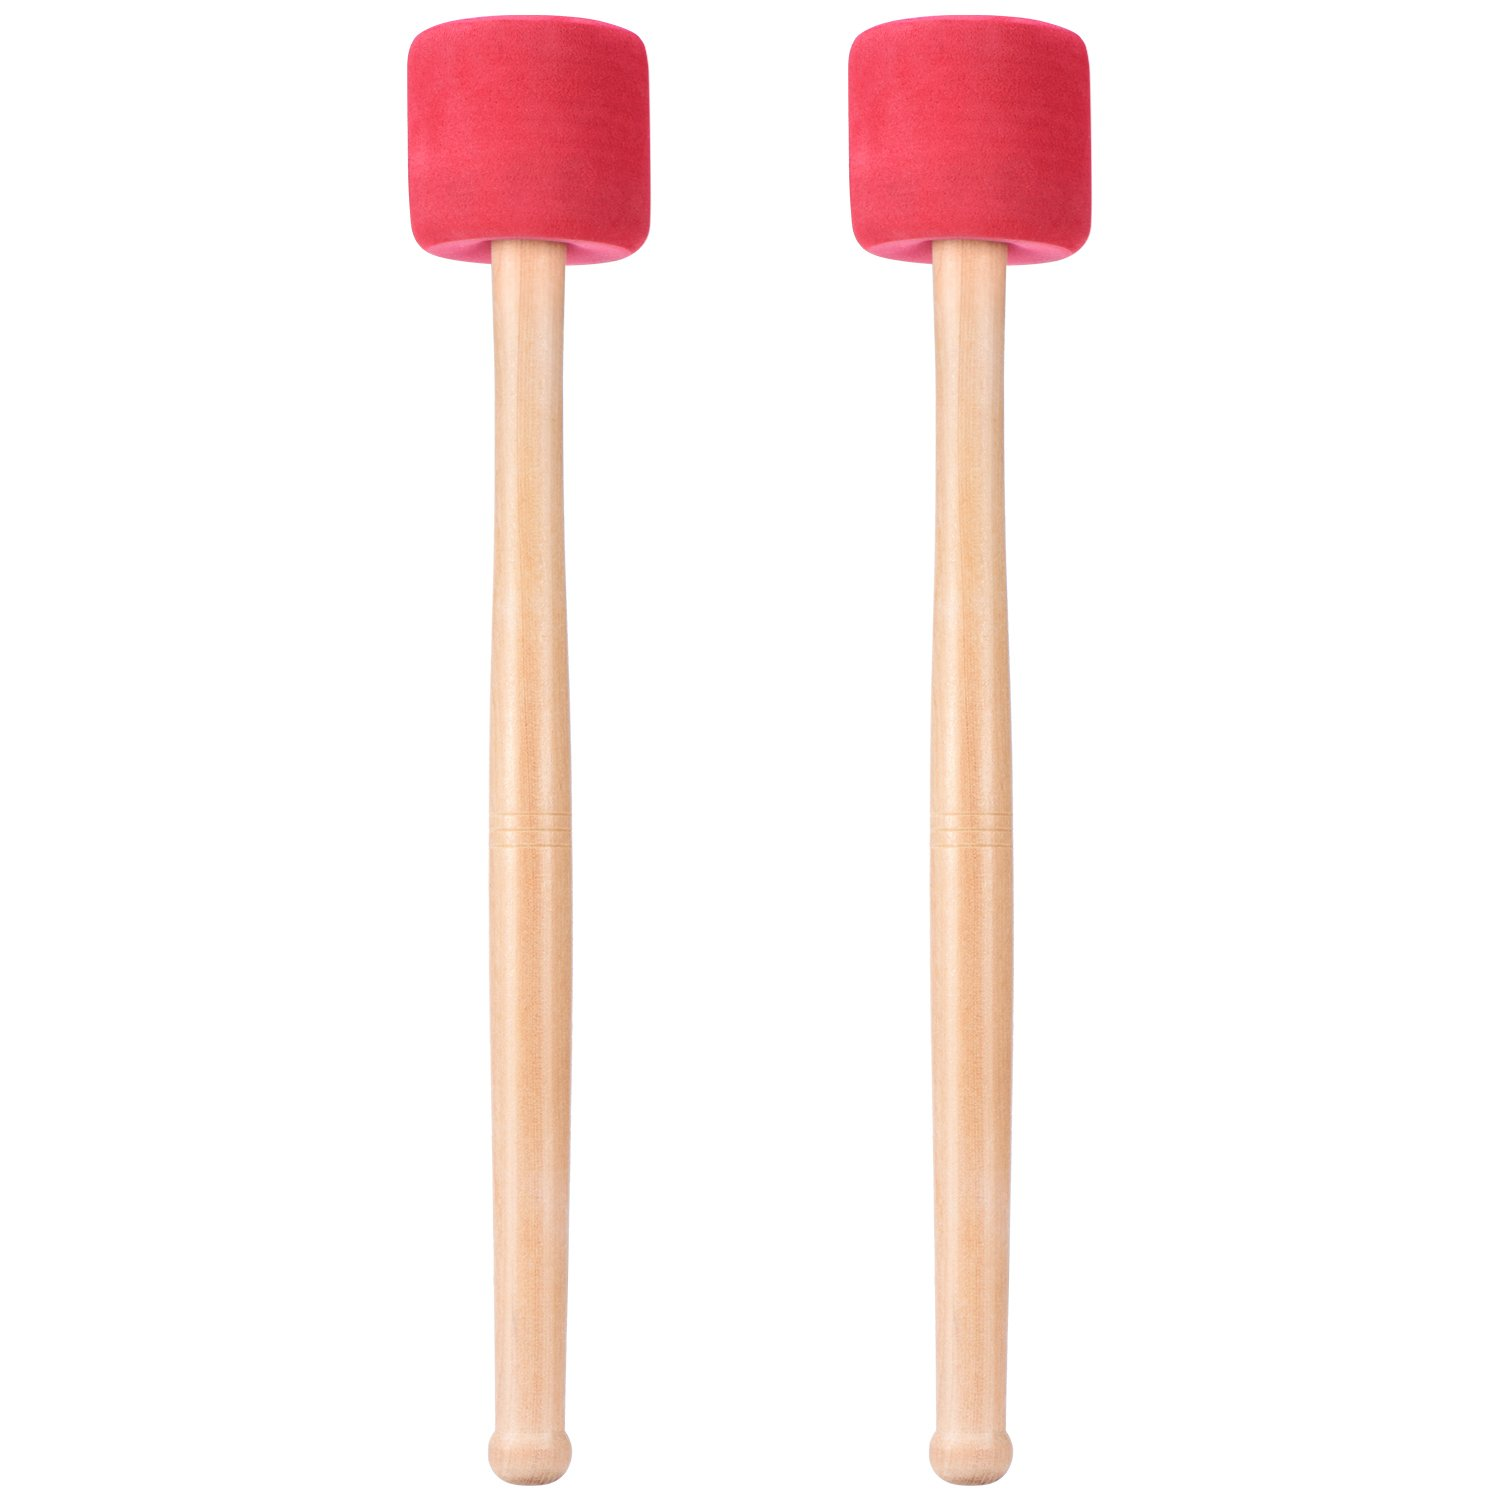 Canomo Bass Drum Mallets Sticks Red Foam Mallet with Wood Handle for Percussion Bass Drum, 13 Inch